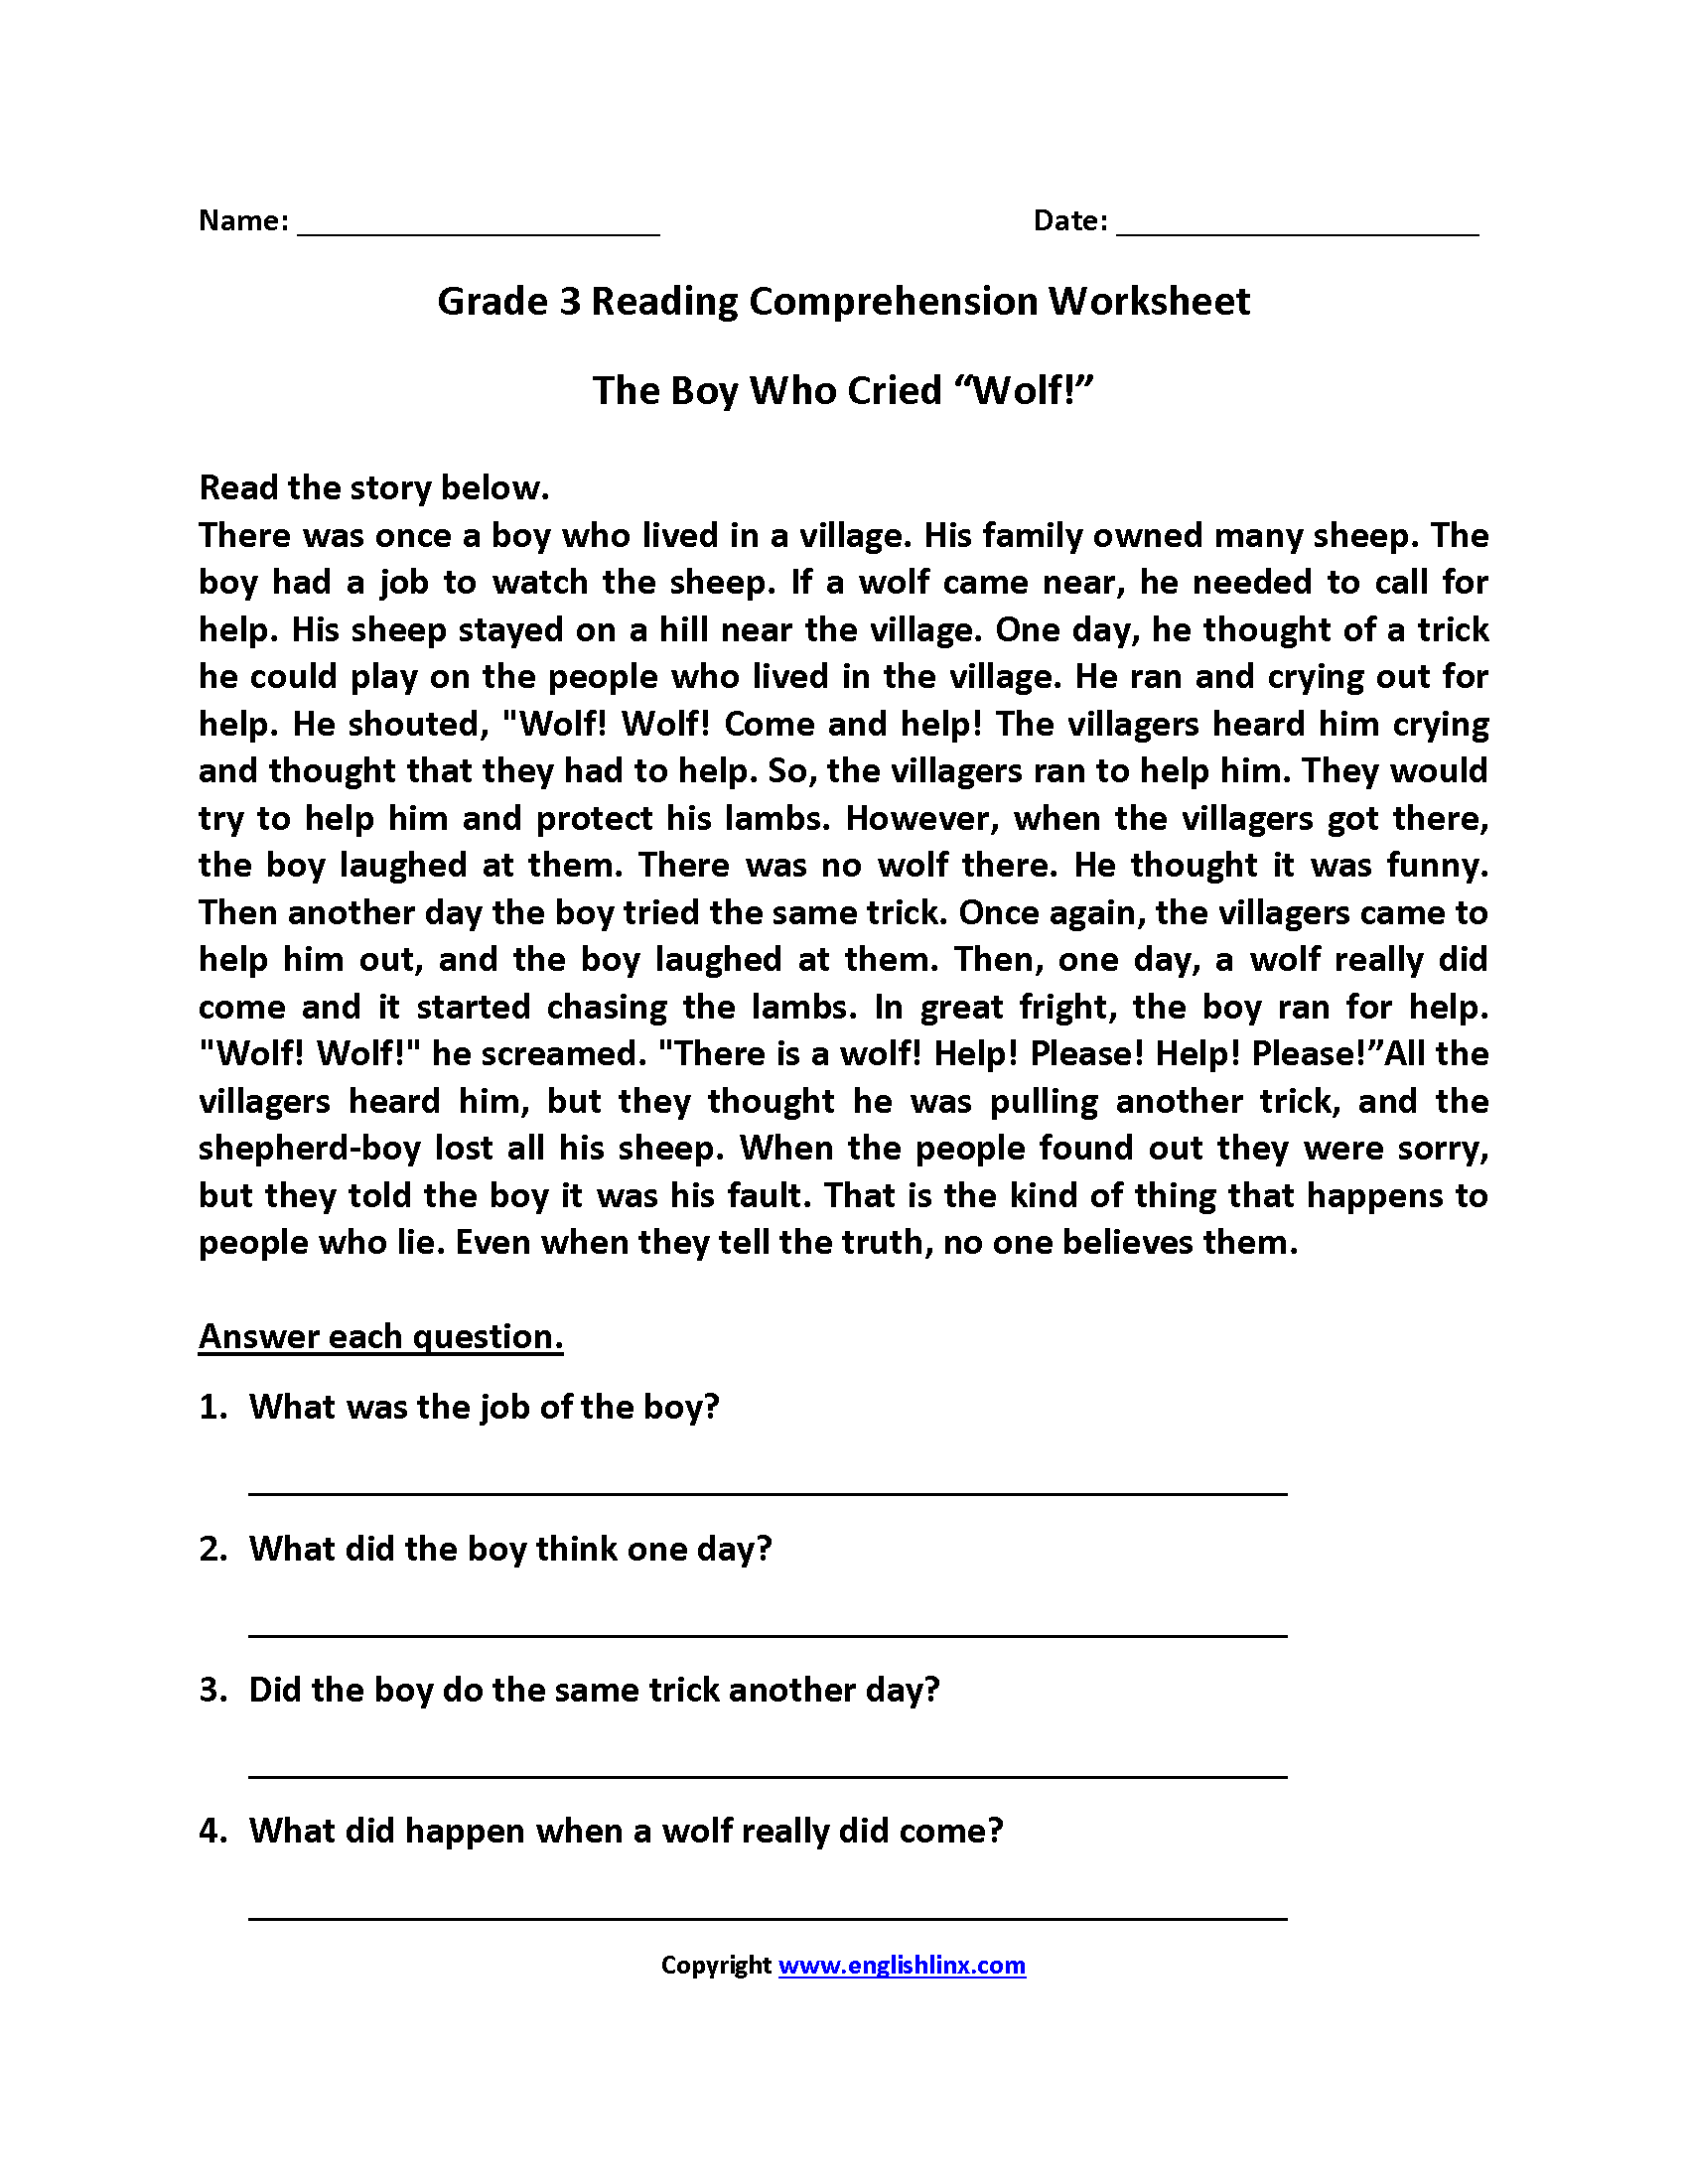 Third Grade Reading Worksheets | Reading Comprehension | Pinterest